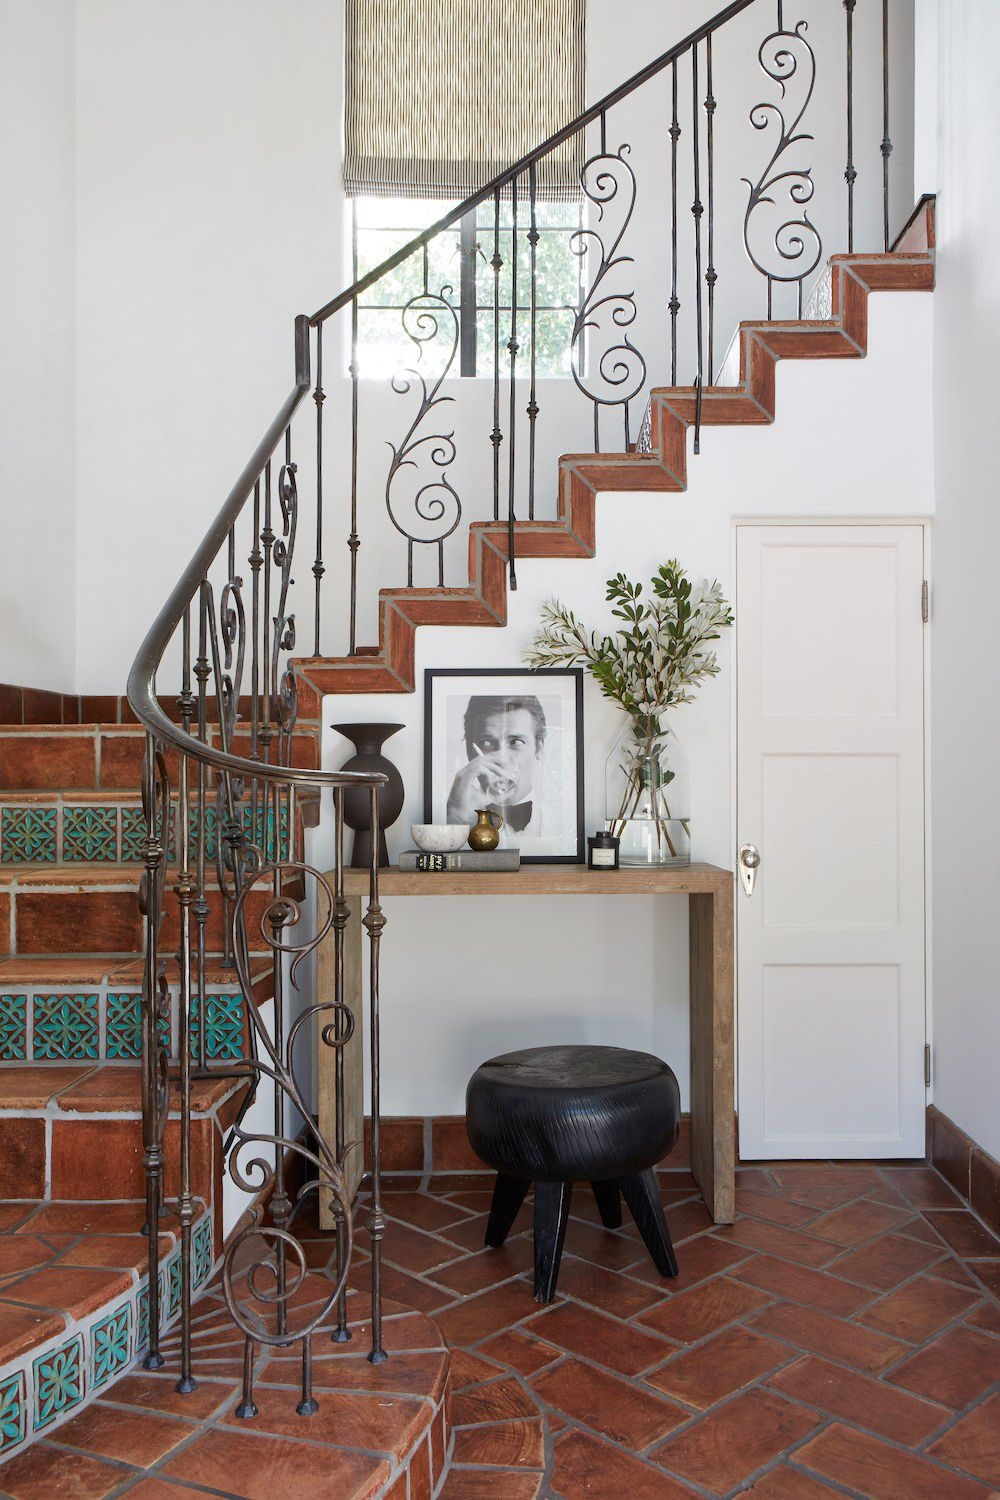 25 Unique Stair Designs Beautiful Stair Ideas For Your House | Stair Design For Seniors | World's | Contemporary | Steel | Unique | Indoor